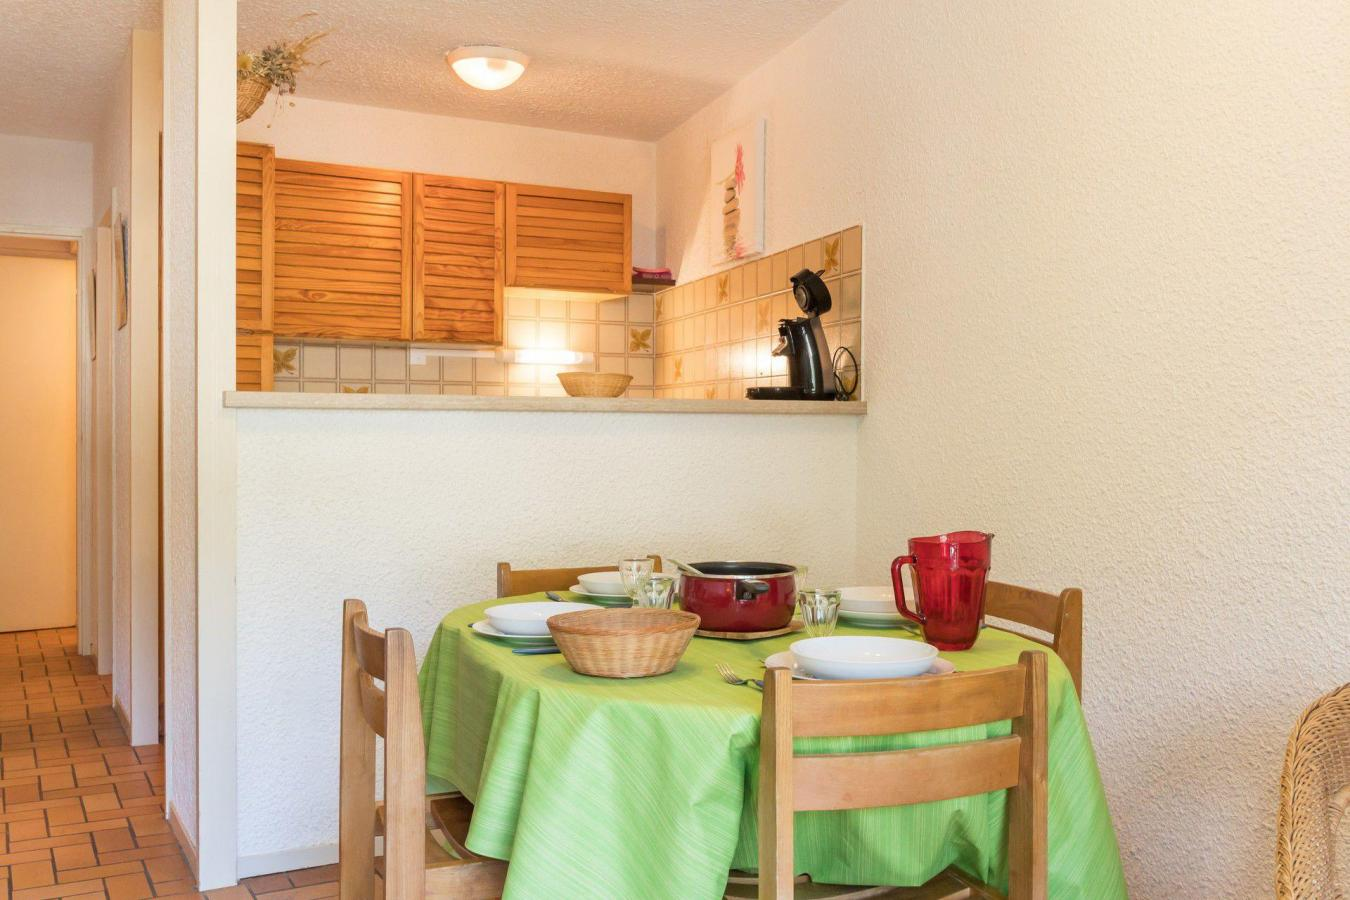 Location au ski Appartement 2 pièces coin montagne 6 personnes (204) - Residence Edelweiss - Serre Chevalier